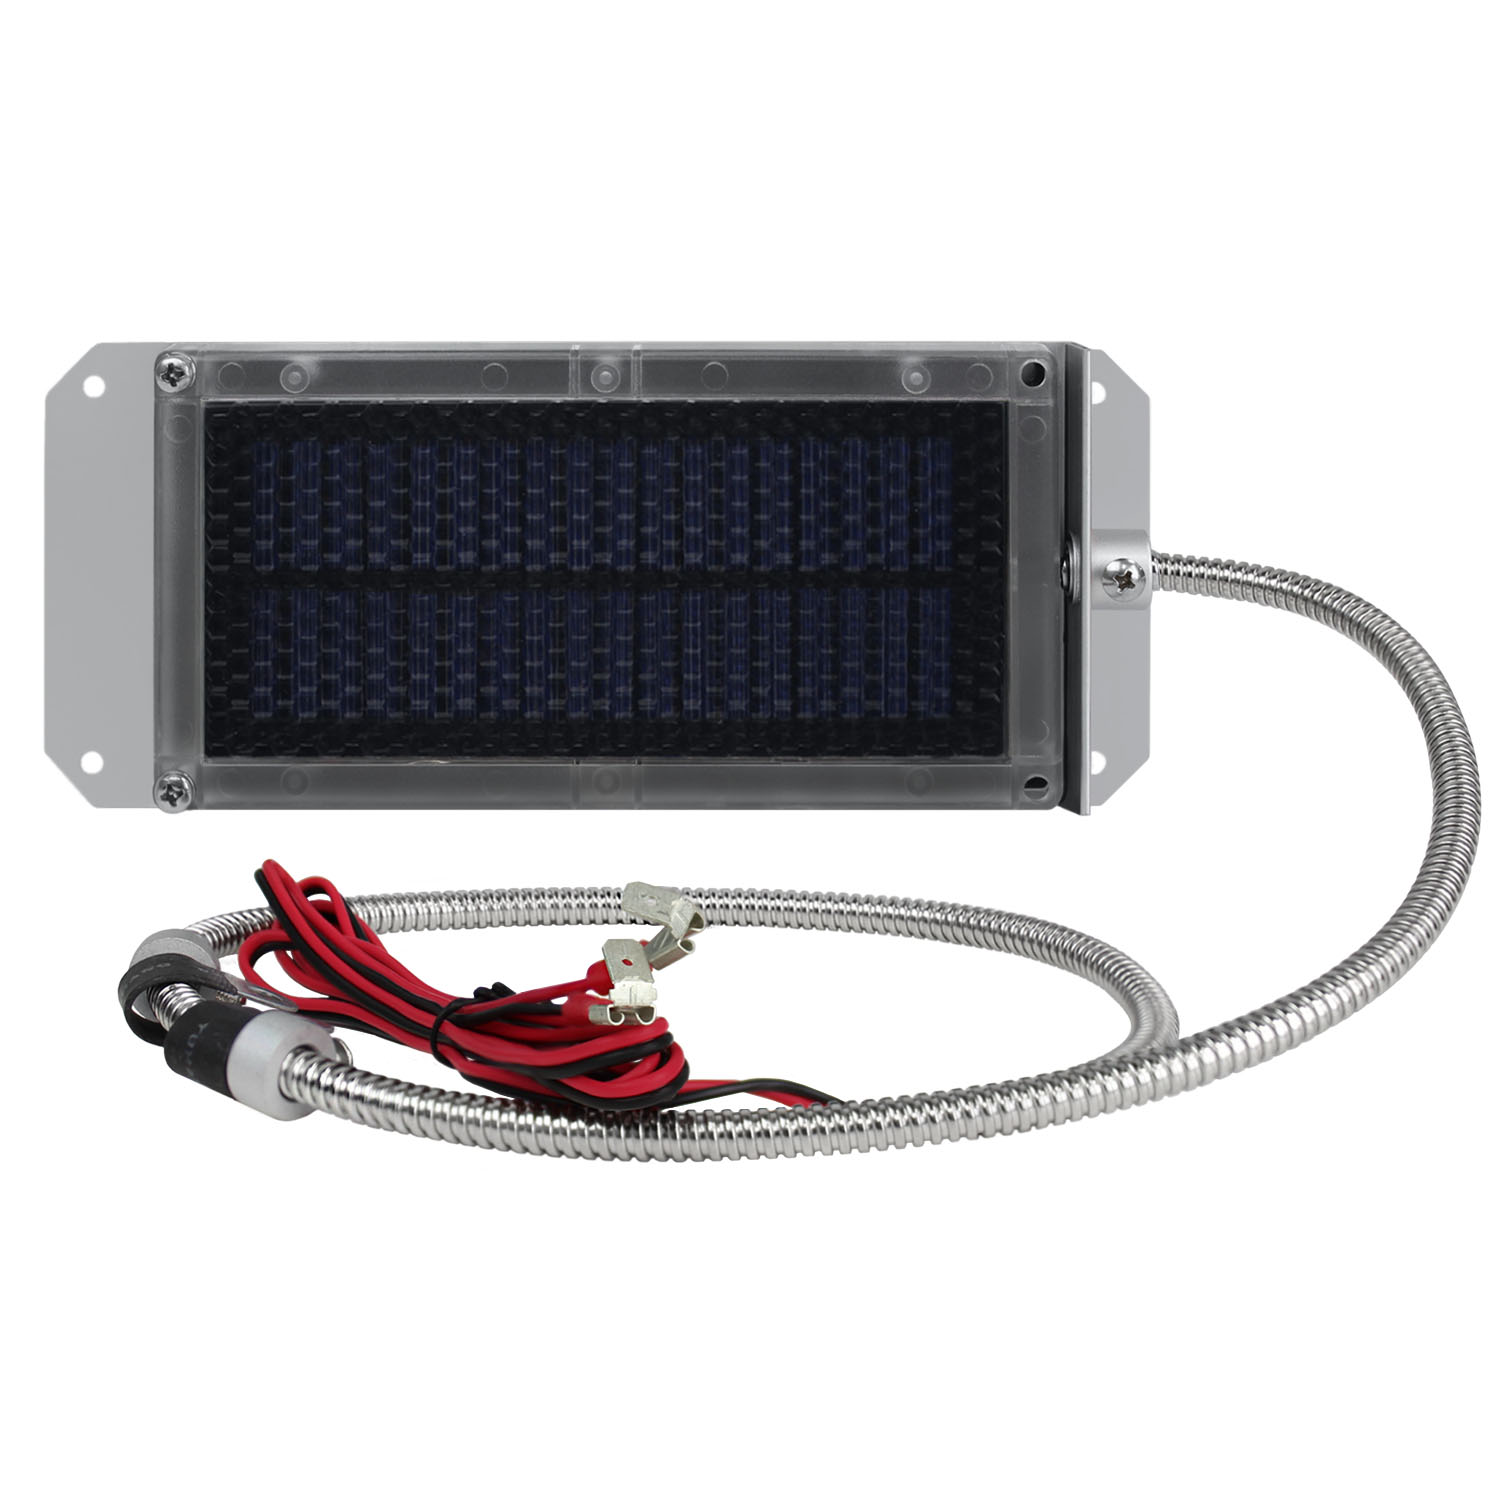 6V SOLAR PANEL CHARGER WITH ALLIGATOR CLIPS